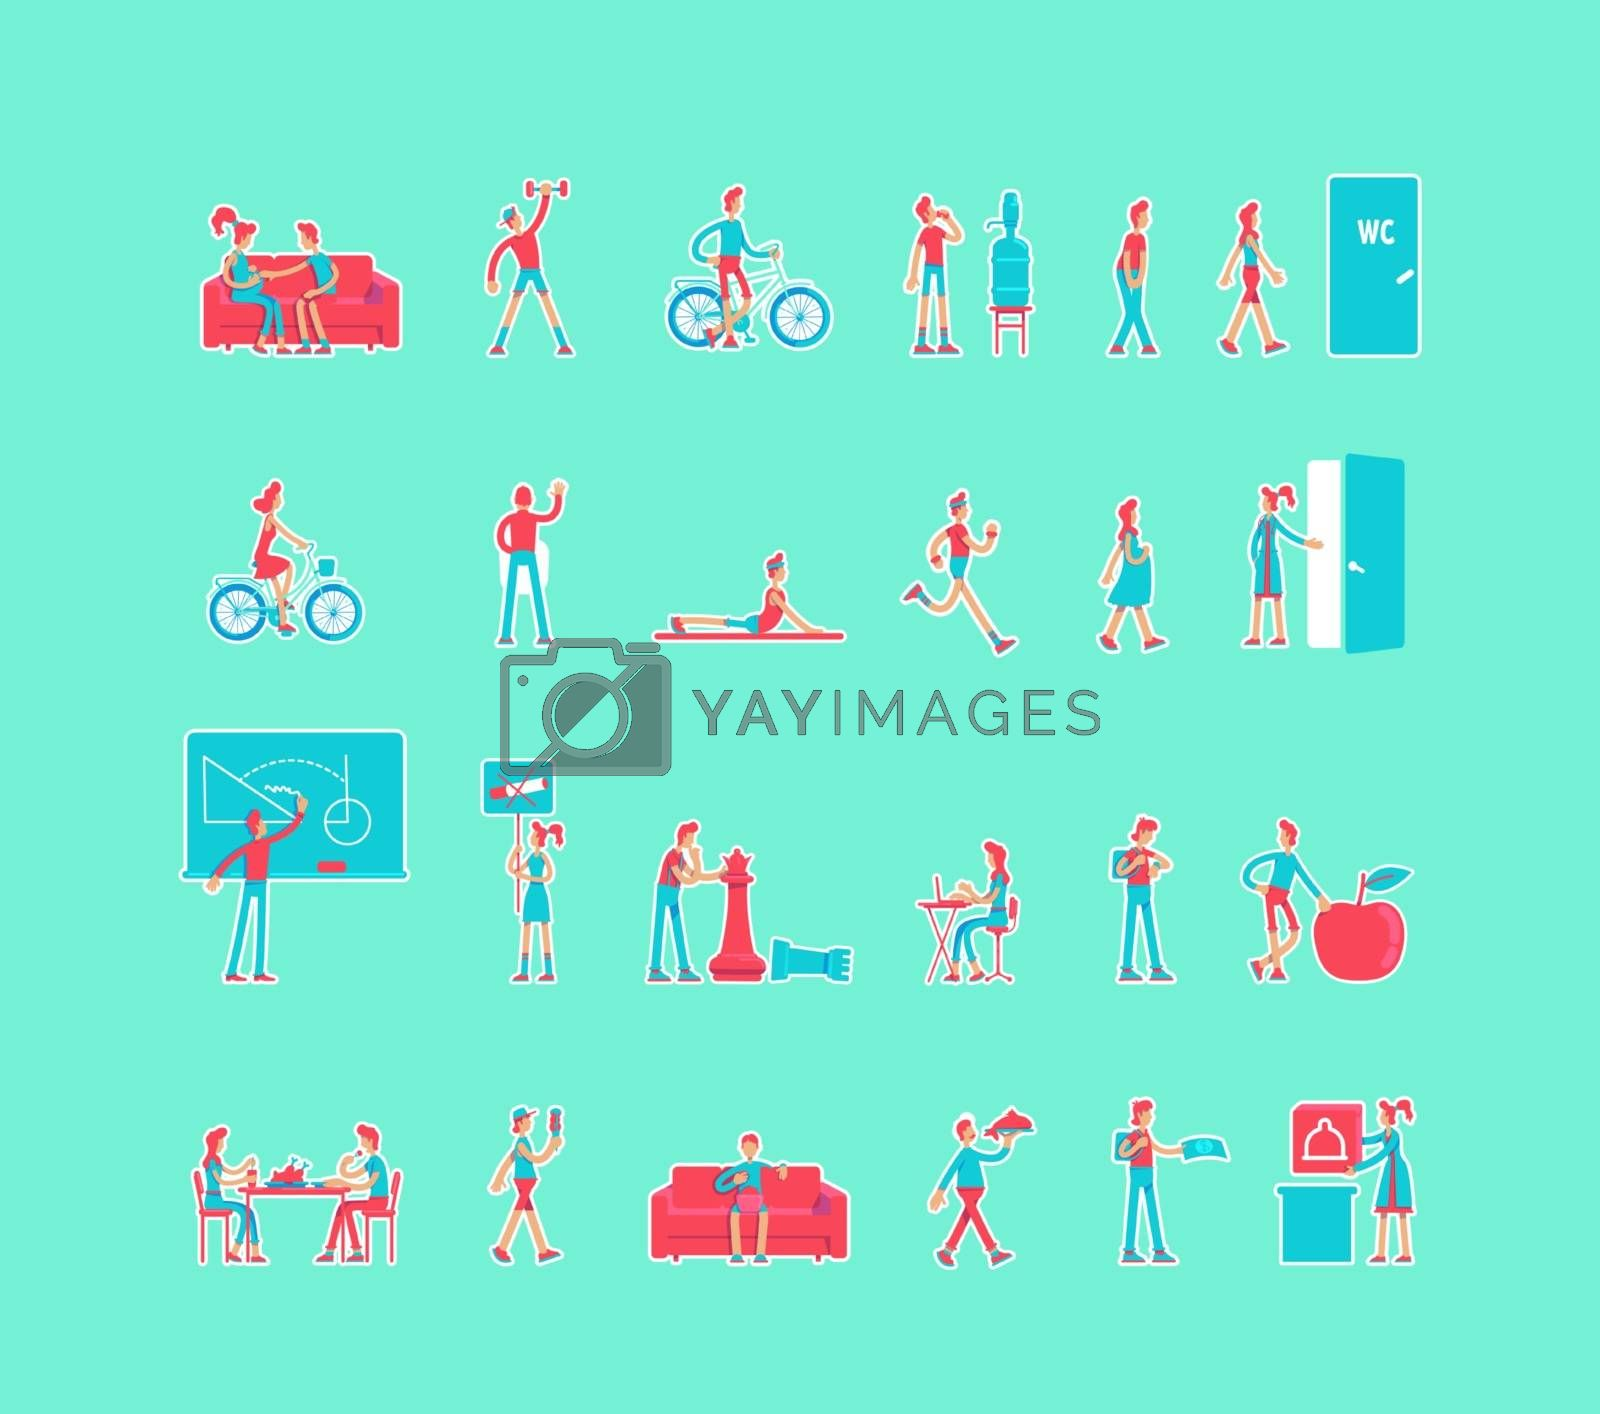 Healthy lifestyle cartoon vector characters set by ntl